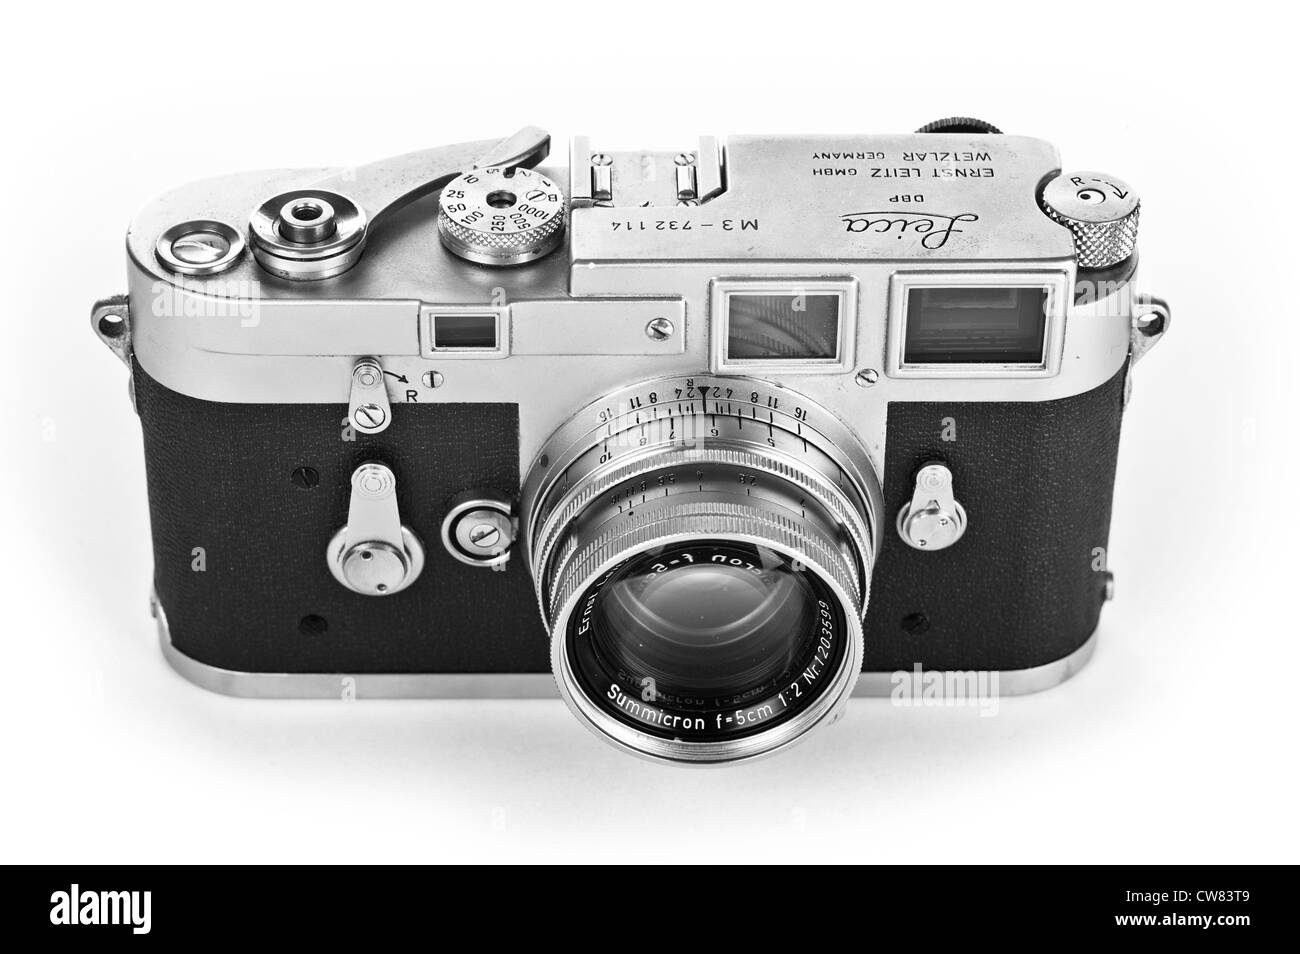 how to use leica m3